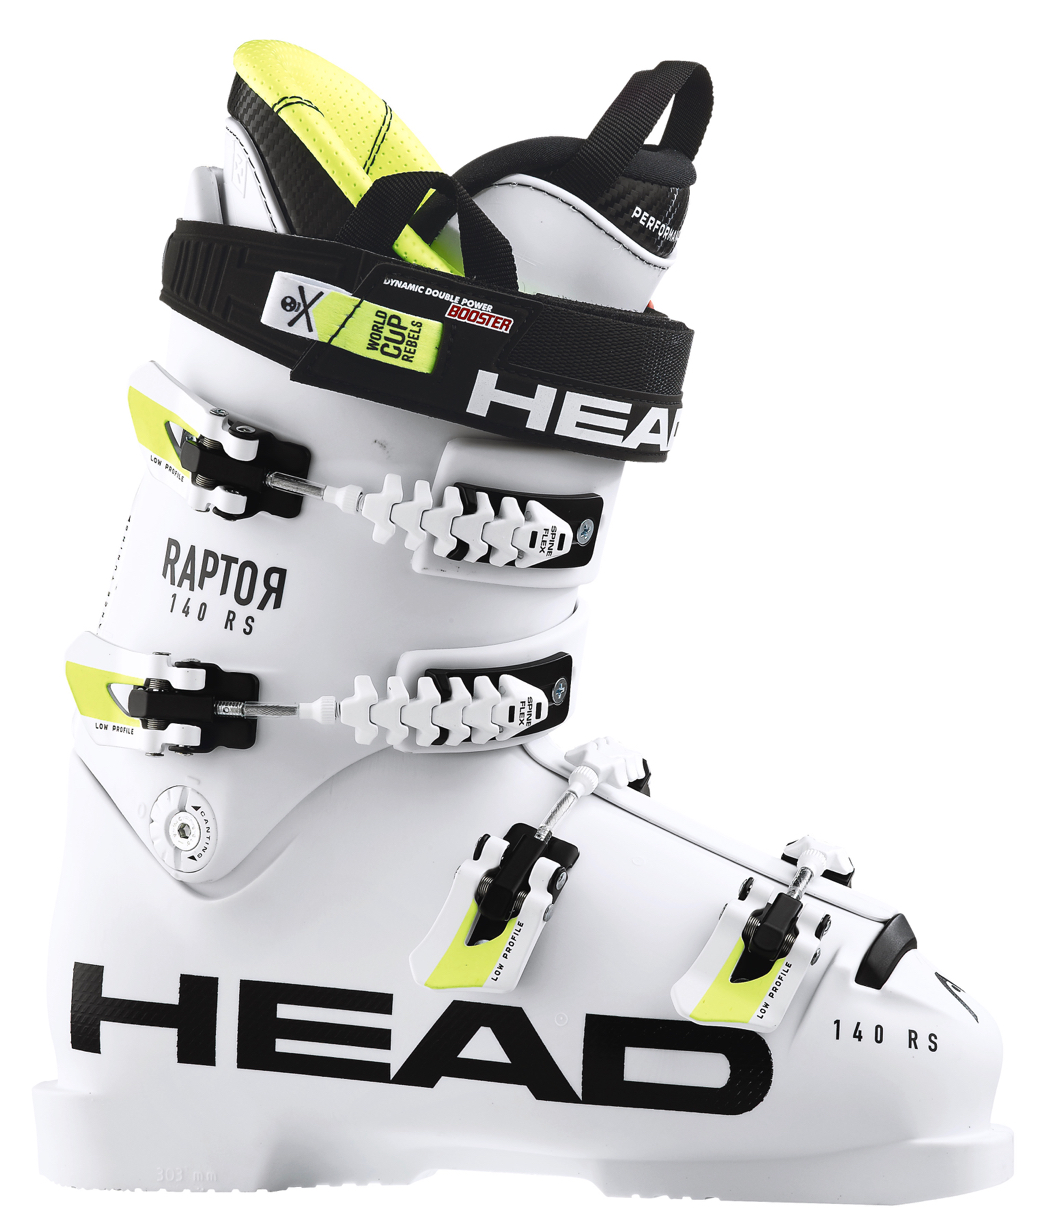 Head (skiing): description and reviews